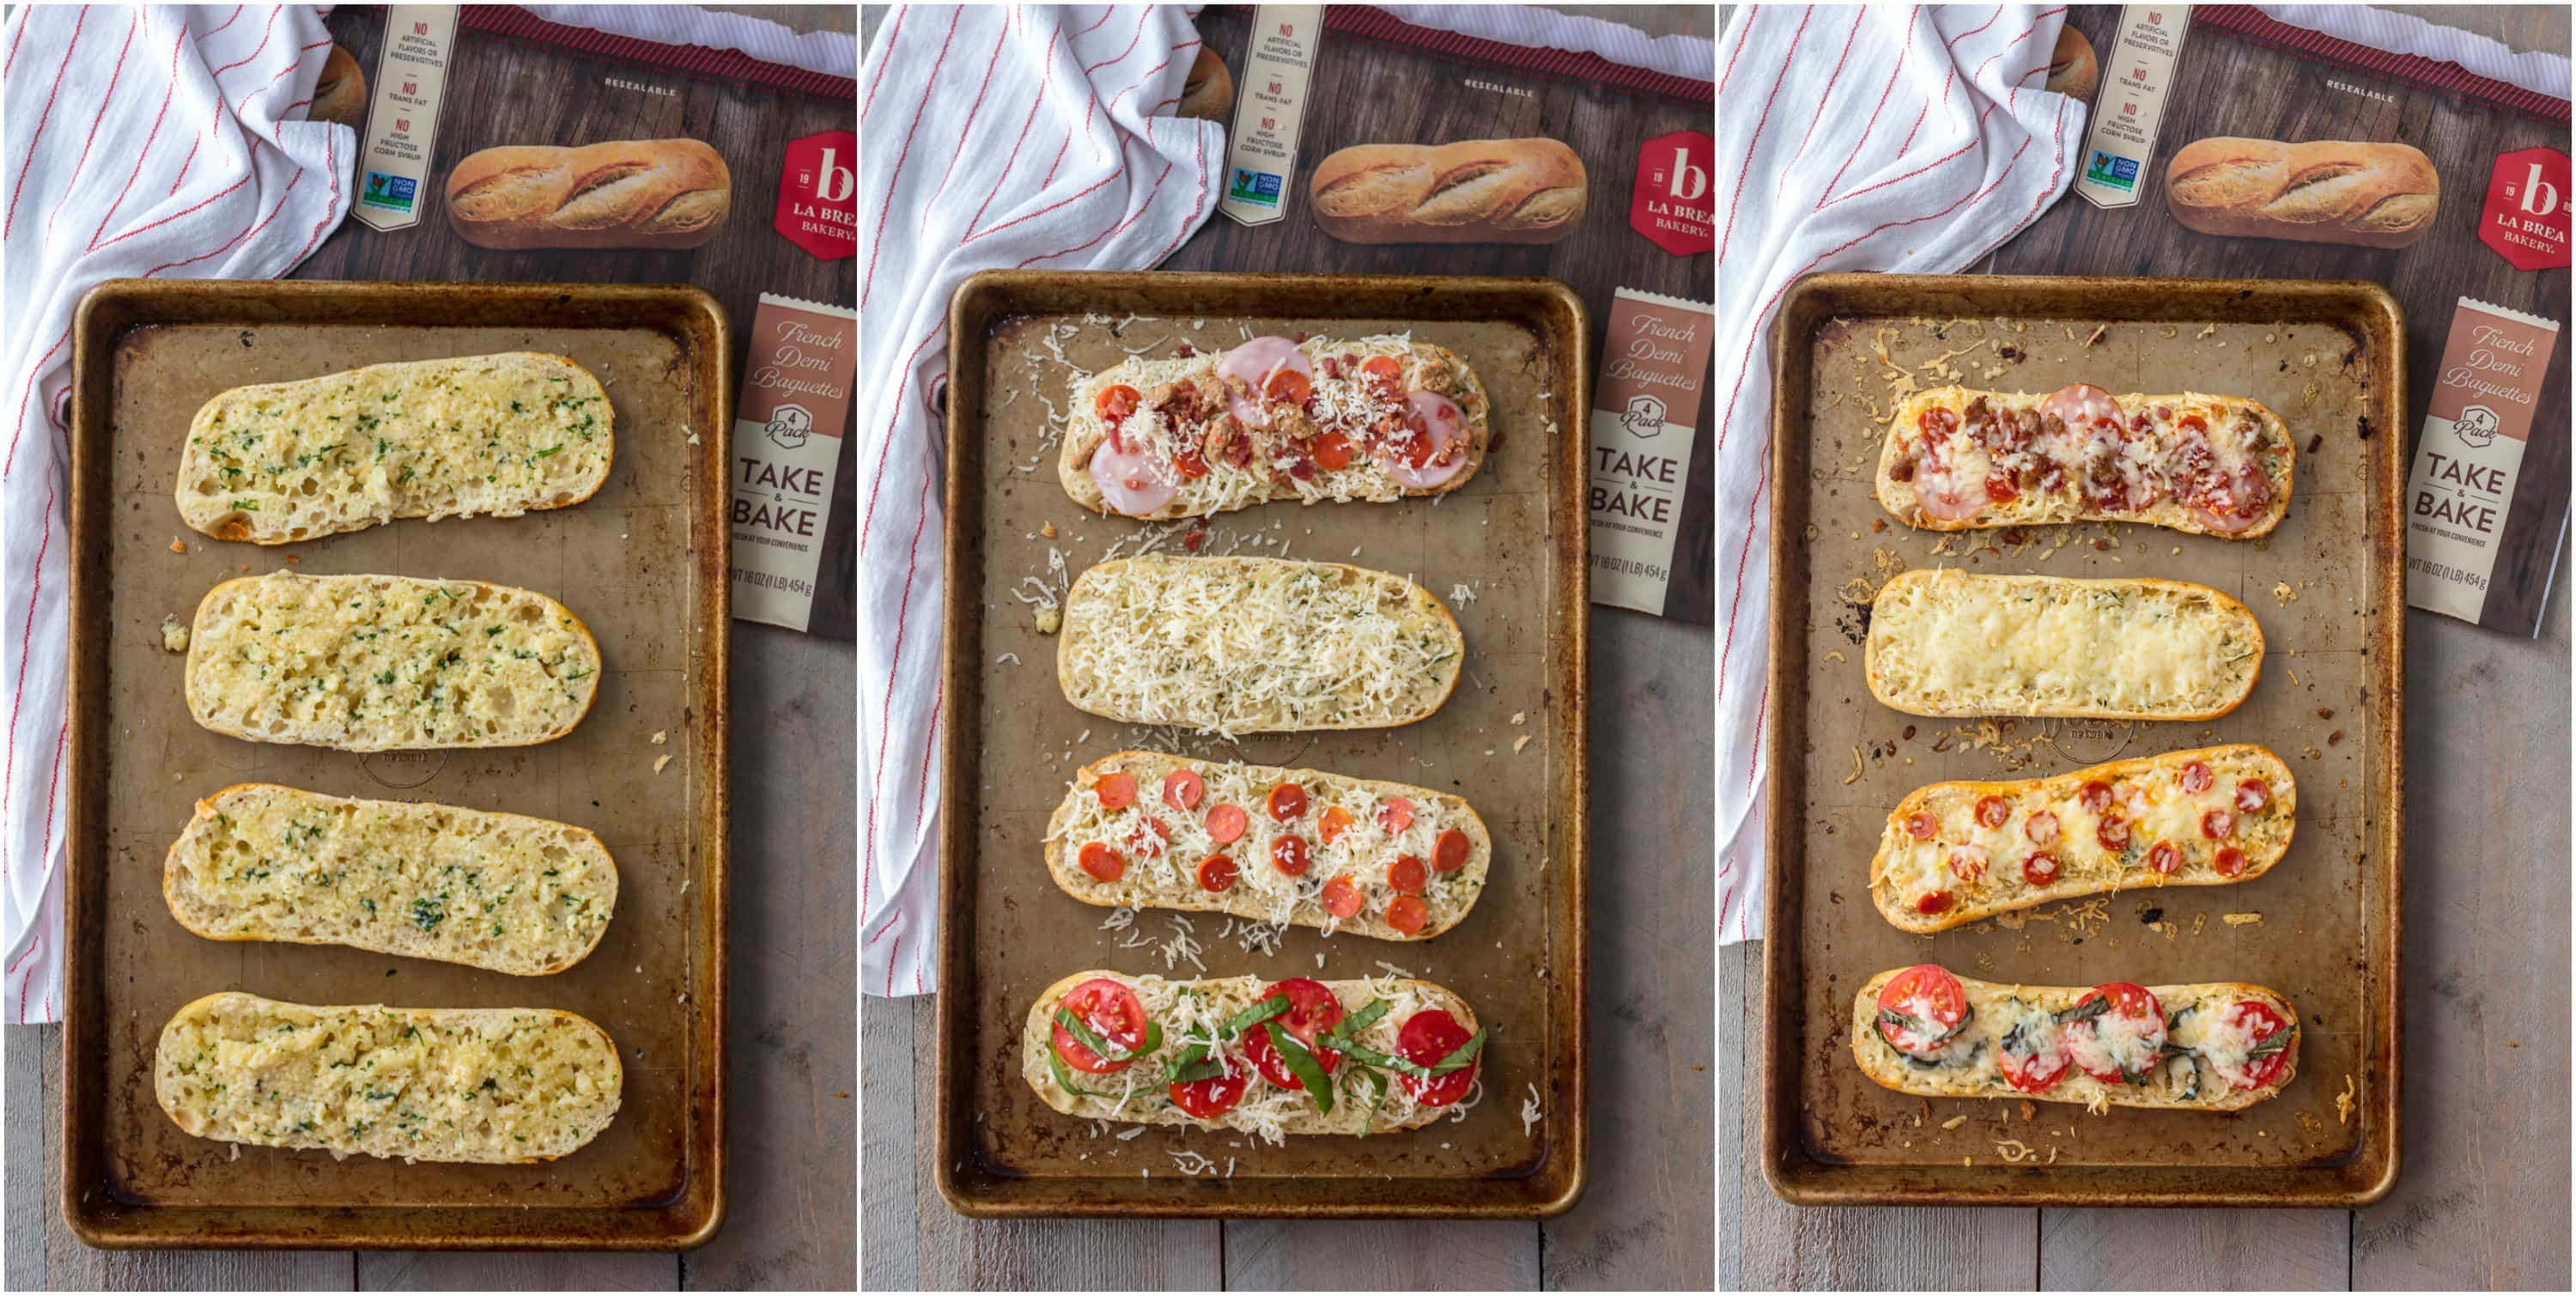 These GARLIC BUTTER FRENCH BREAD PIZZA BITES are the easiest and tastiest cheesy appetizer! Loaded with garlic butter, cheese, and all your favorite toppings! I say these are an appetizer, but we may just eat them as an entire meal!